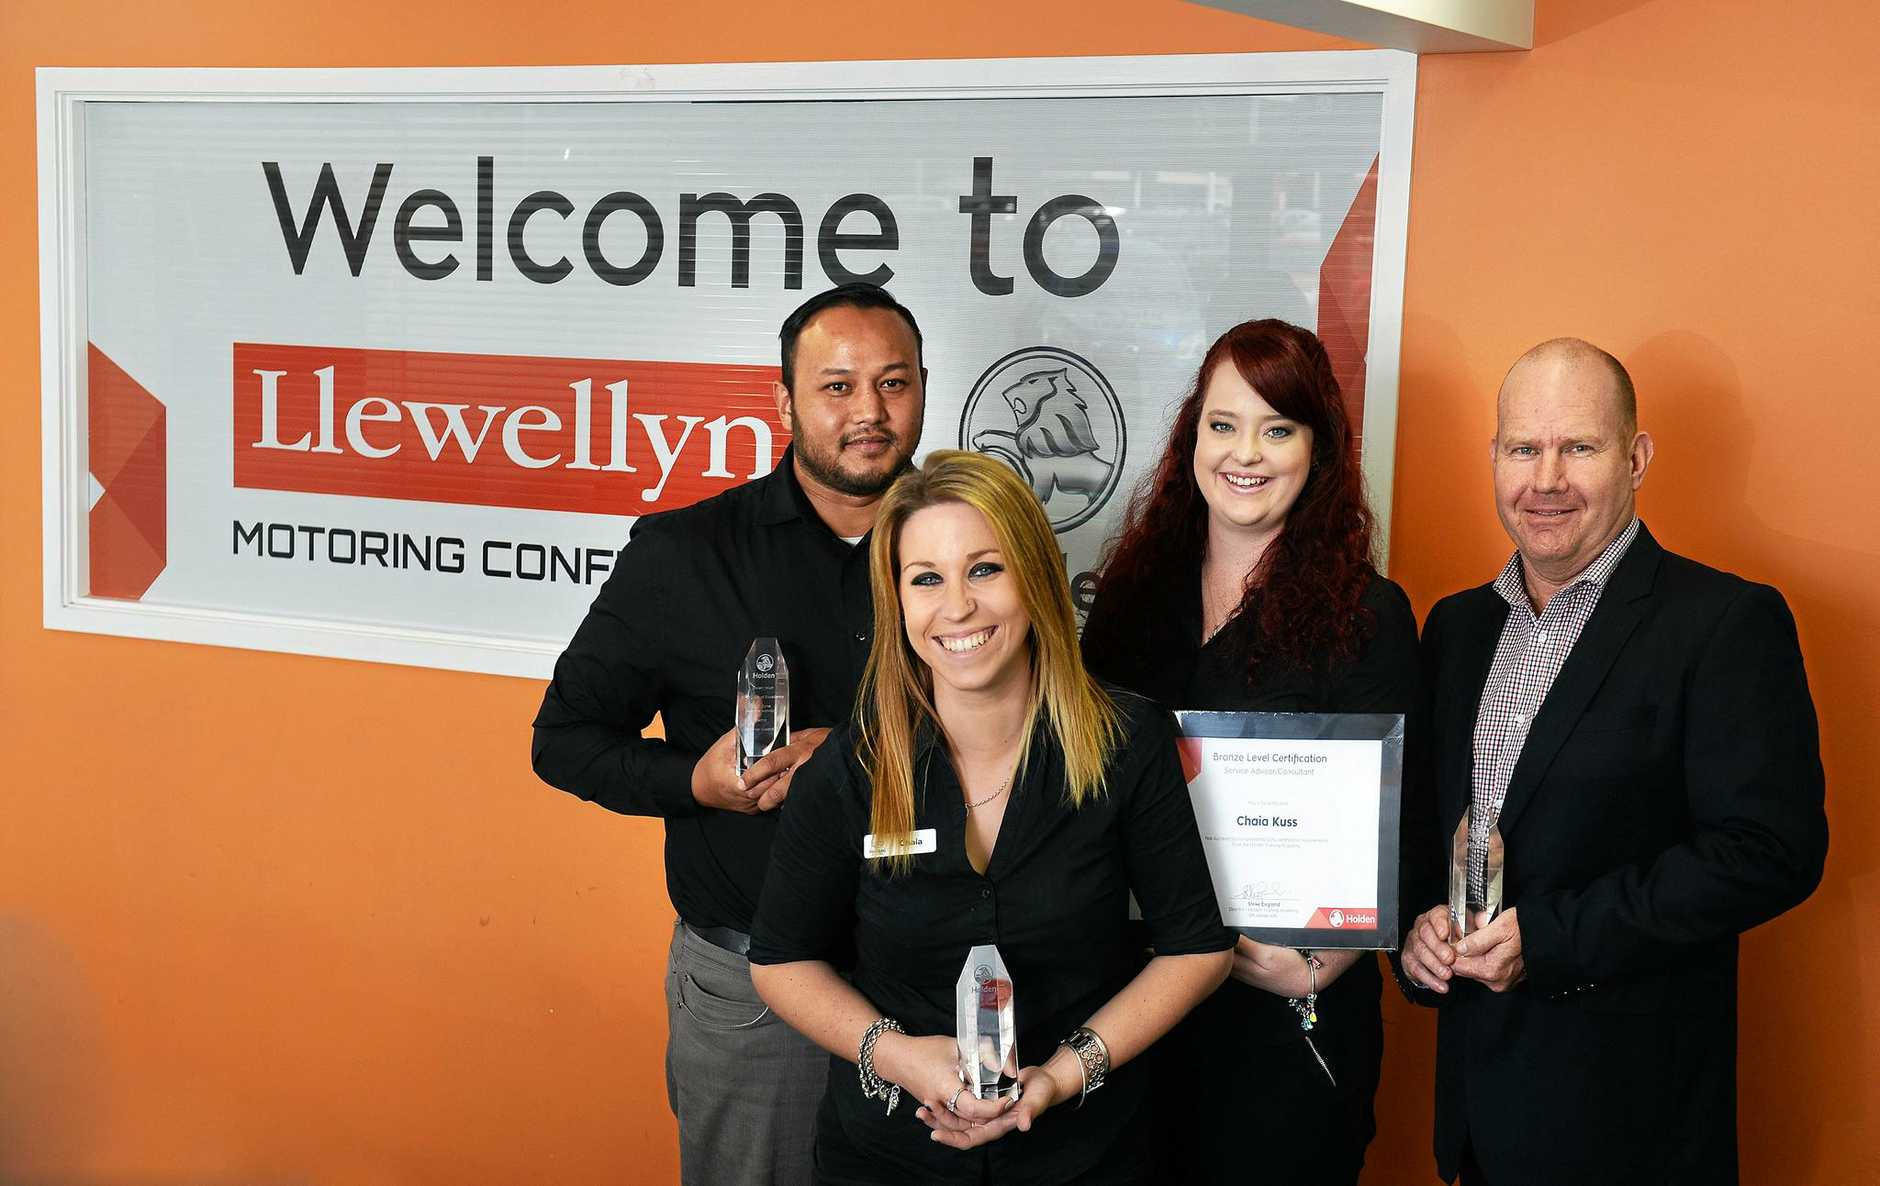 AHEAD OF THE PACK: Llewellyn Holden Service advisors Owen Ngwun, Chaia Kuss and Amy Graham and service manager Adam Jeffery celebrate winning first place service centre in Queensland.